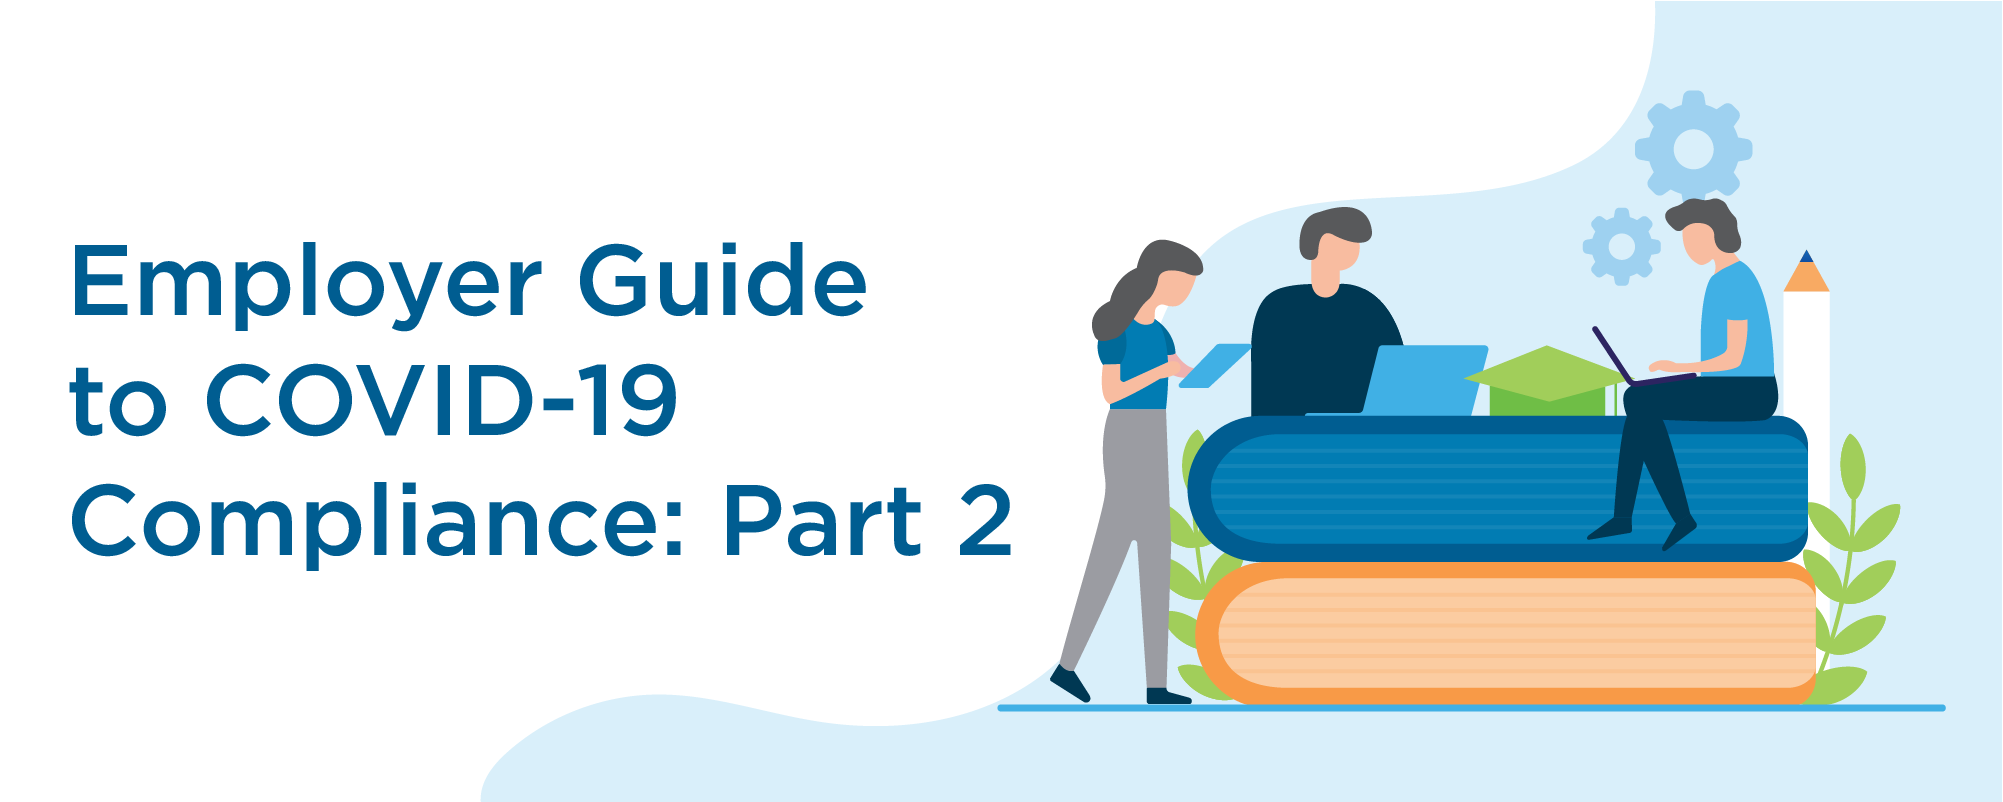 employer guide to covid 19 compliance part 2